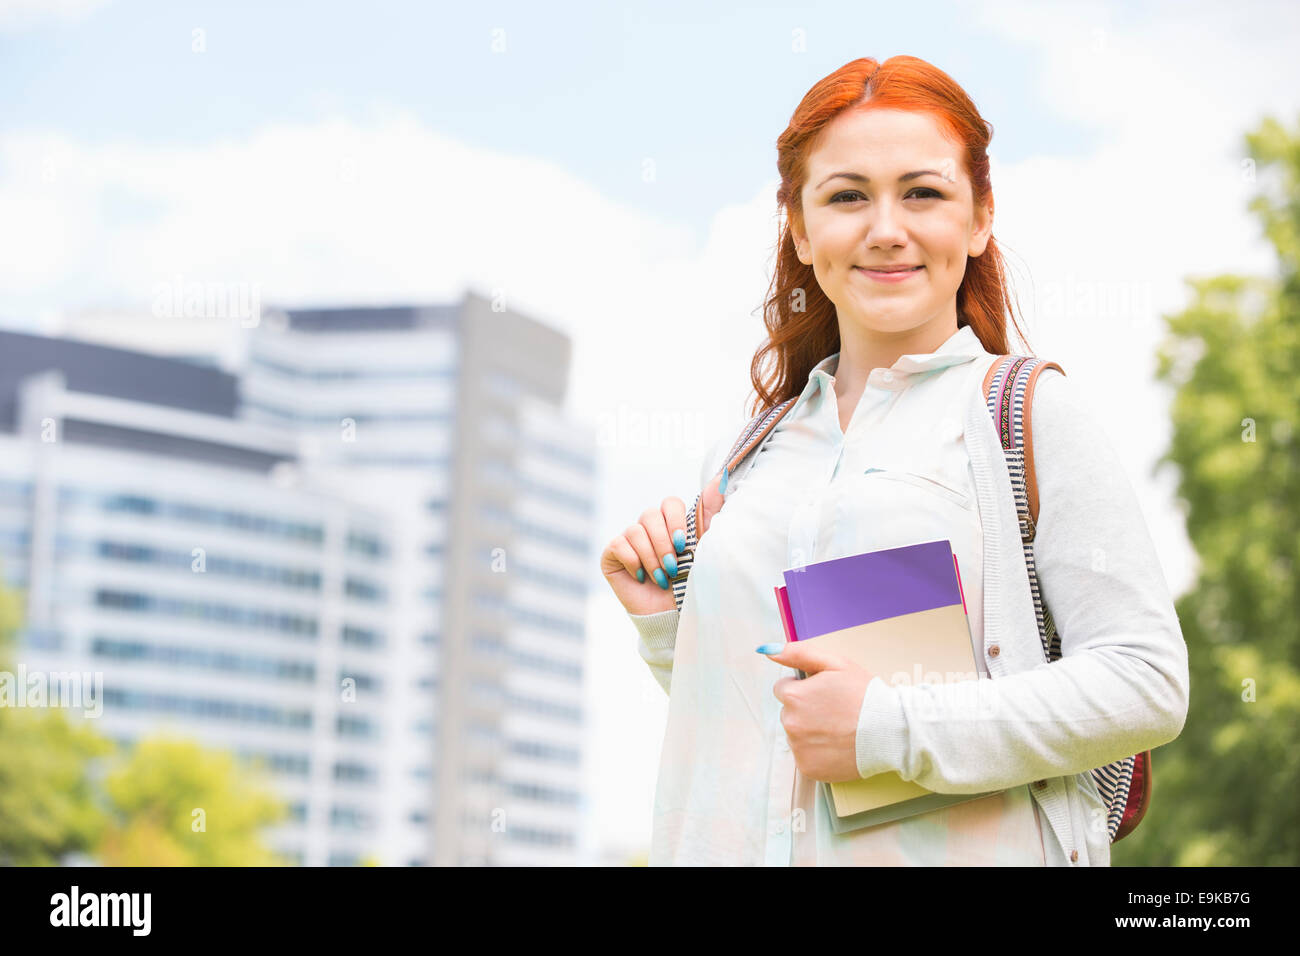 Portrait of beautiful college student at campus - Stock Image